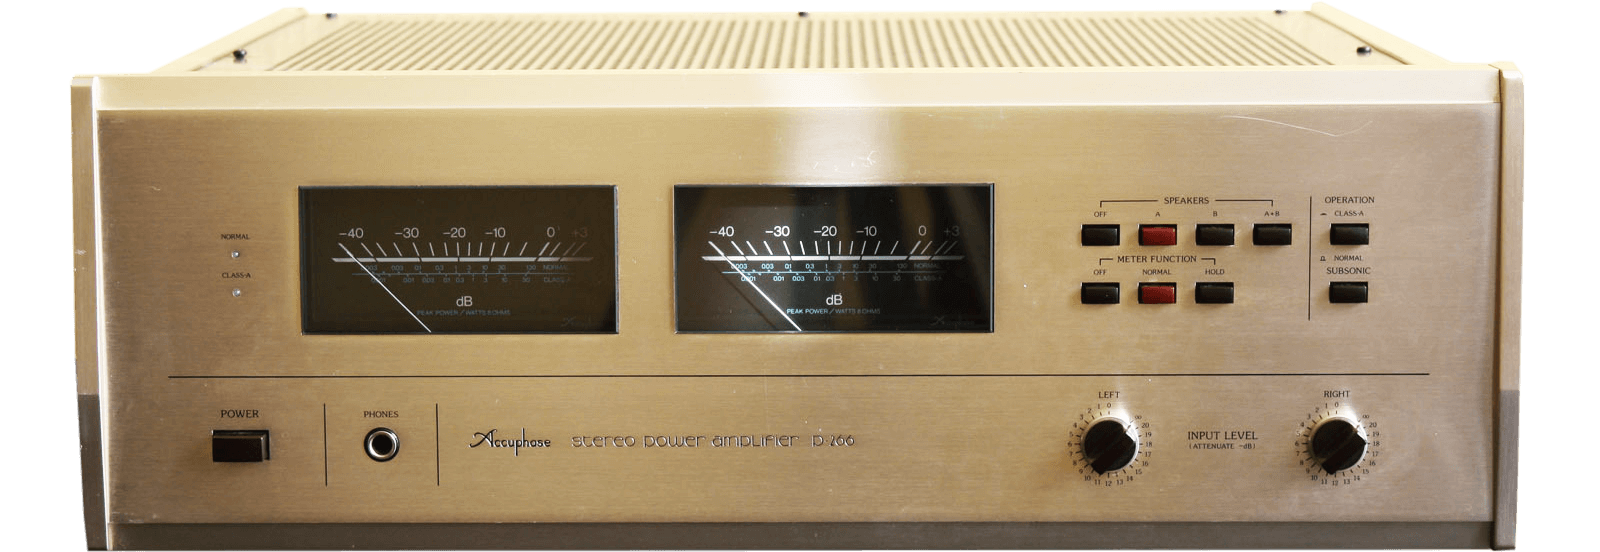 Accuphase パワーアンプ P-266